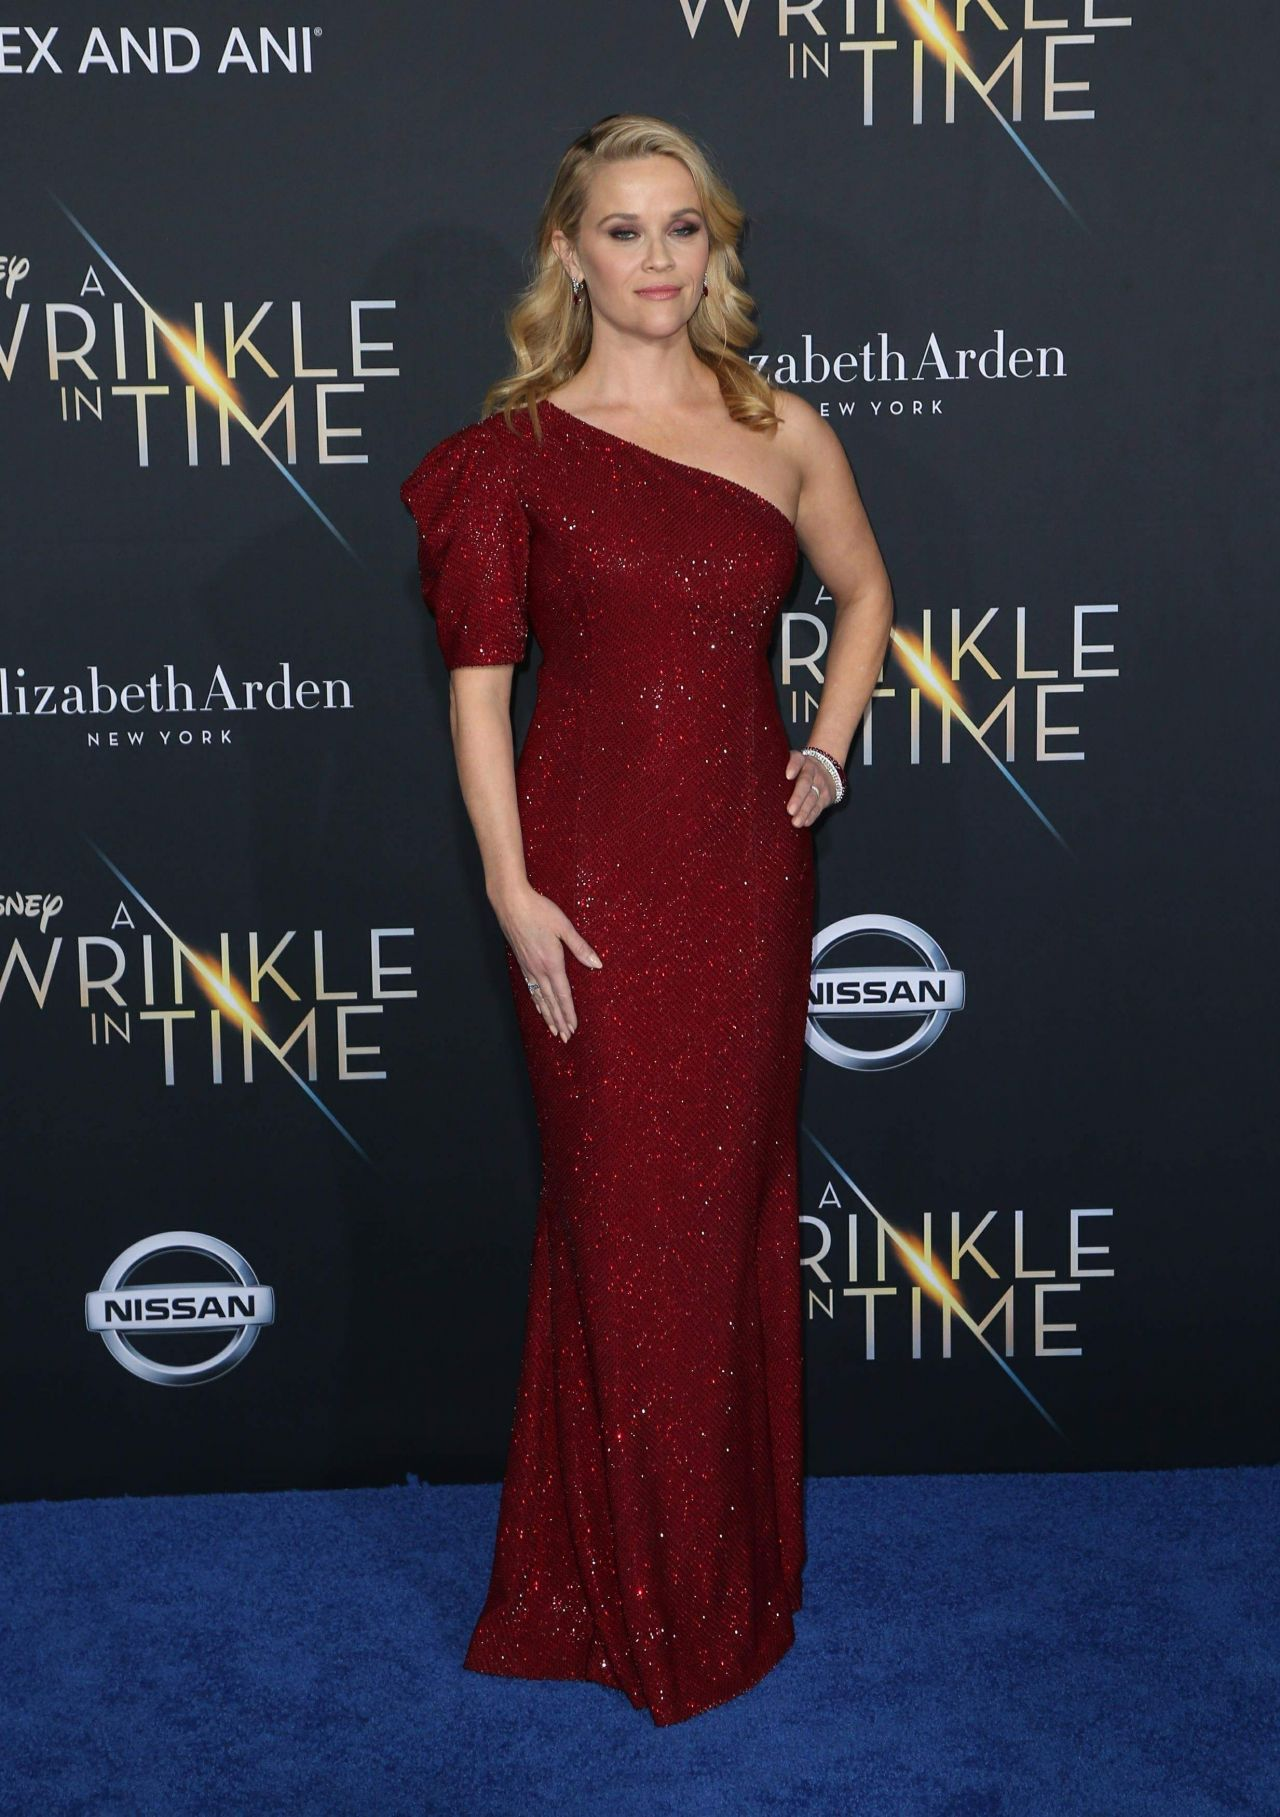 http://celebmafia.com/wp-content/uploads/2018/02/reese-witherspoon-a-wrinkle-in-time-premiere-in-los-angeles-5.jpg